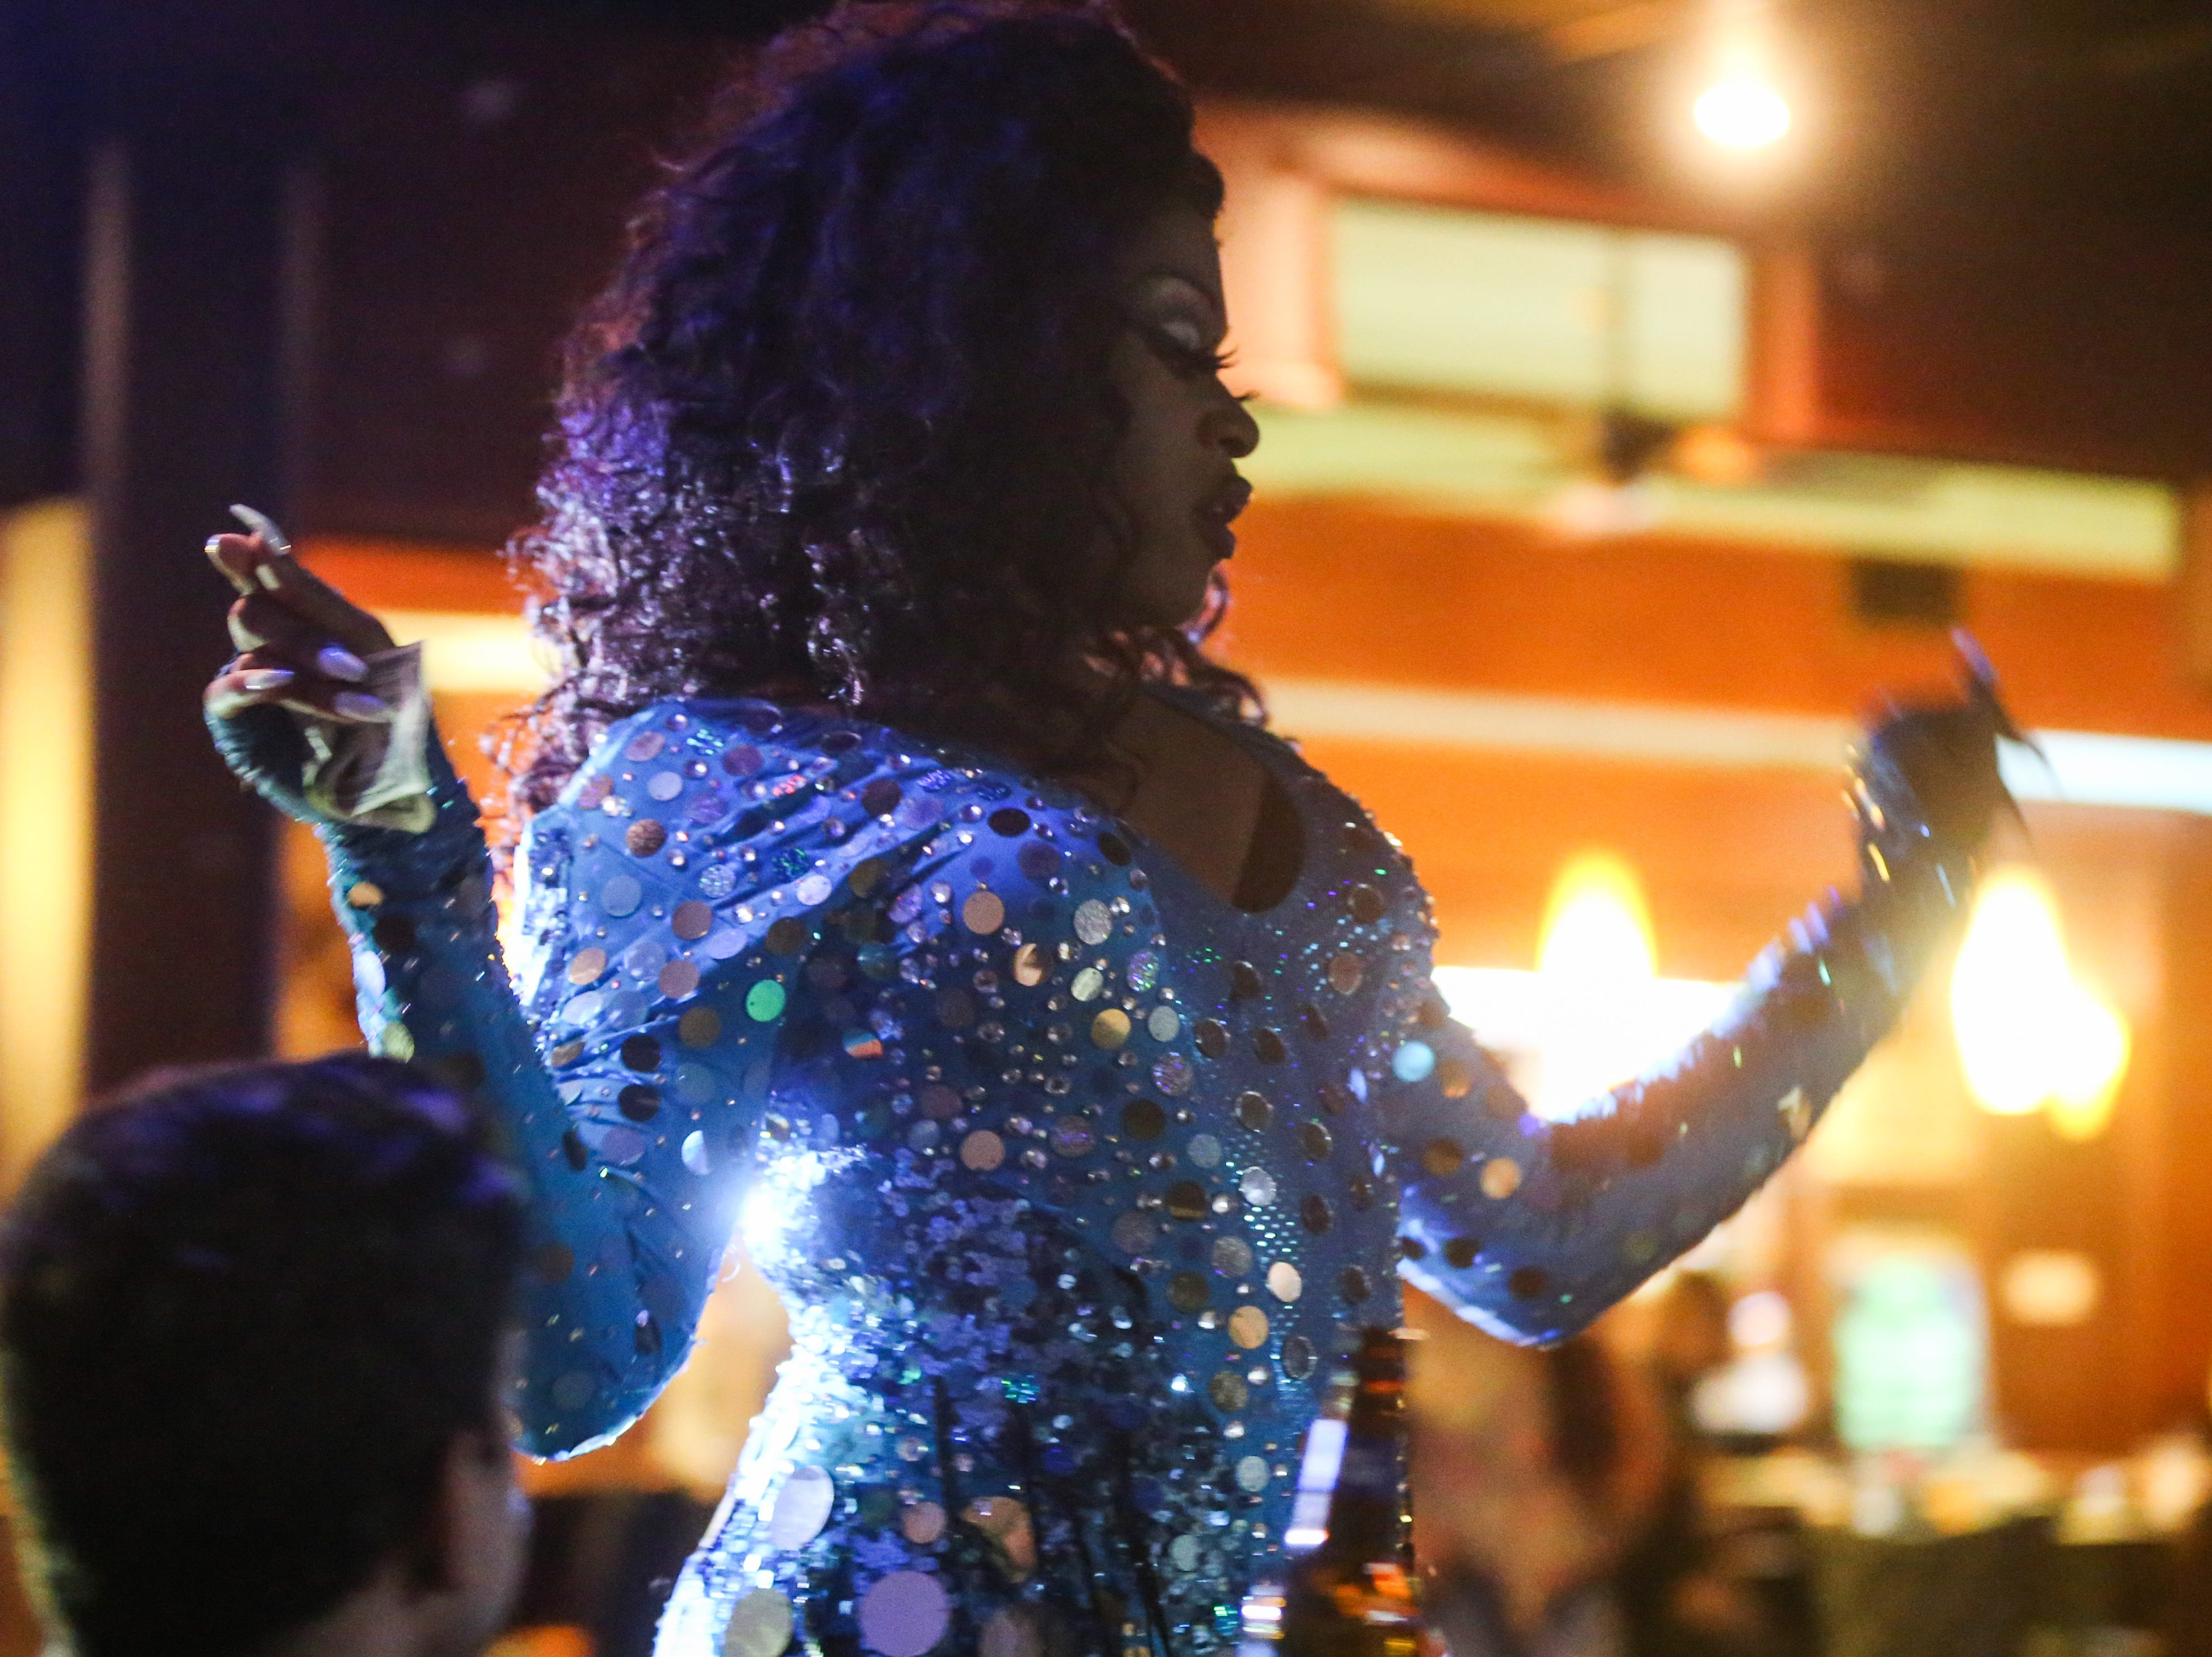 Kennedy Fatale performs during the drag show Friday, April 19, 2019, at the Beauregard.